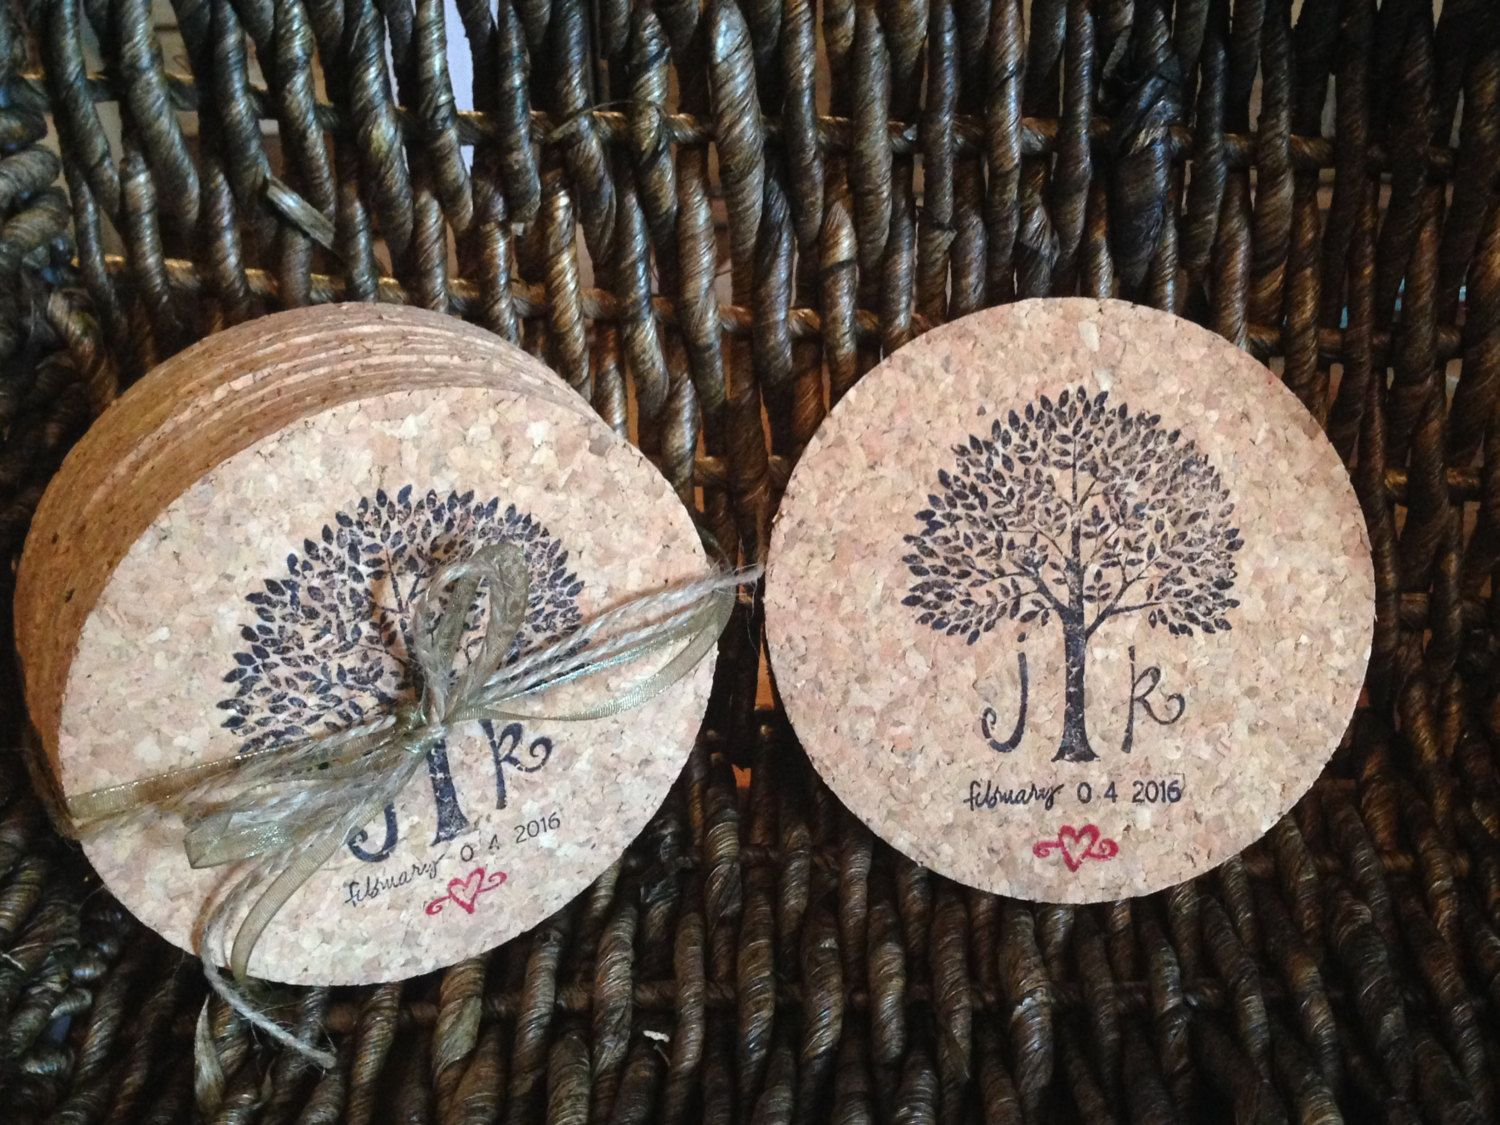 25 Wedding Favor Coasters, Tree Coasters, Round Stamped Cork Coasters, Custom Wedding Coasters, Wedding Party Favors, Personalized Coasters by KaraShareeCollection on Etsy